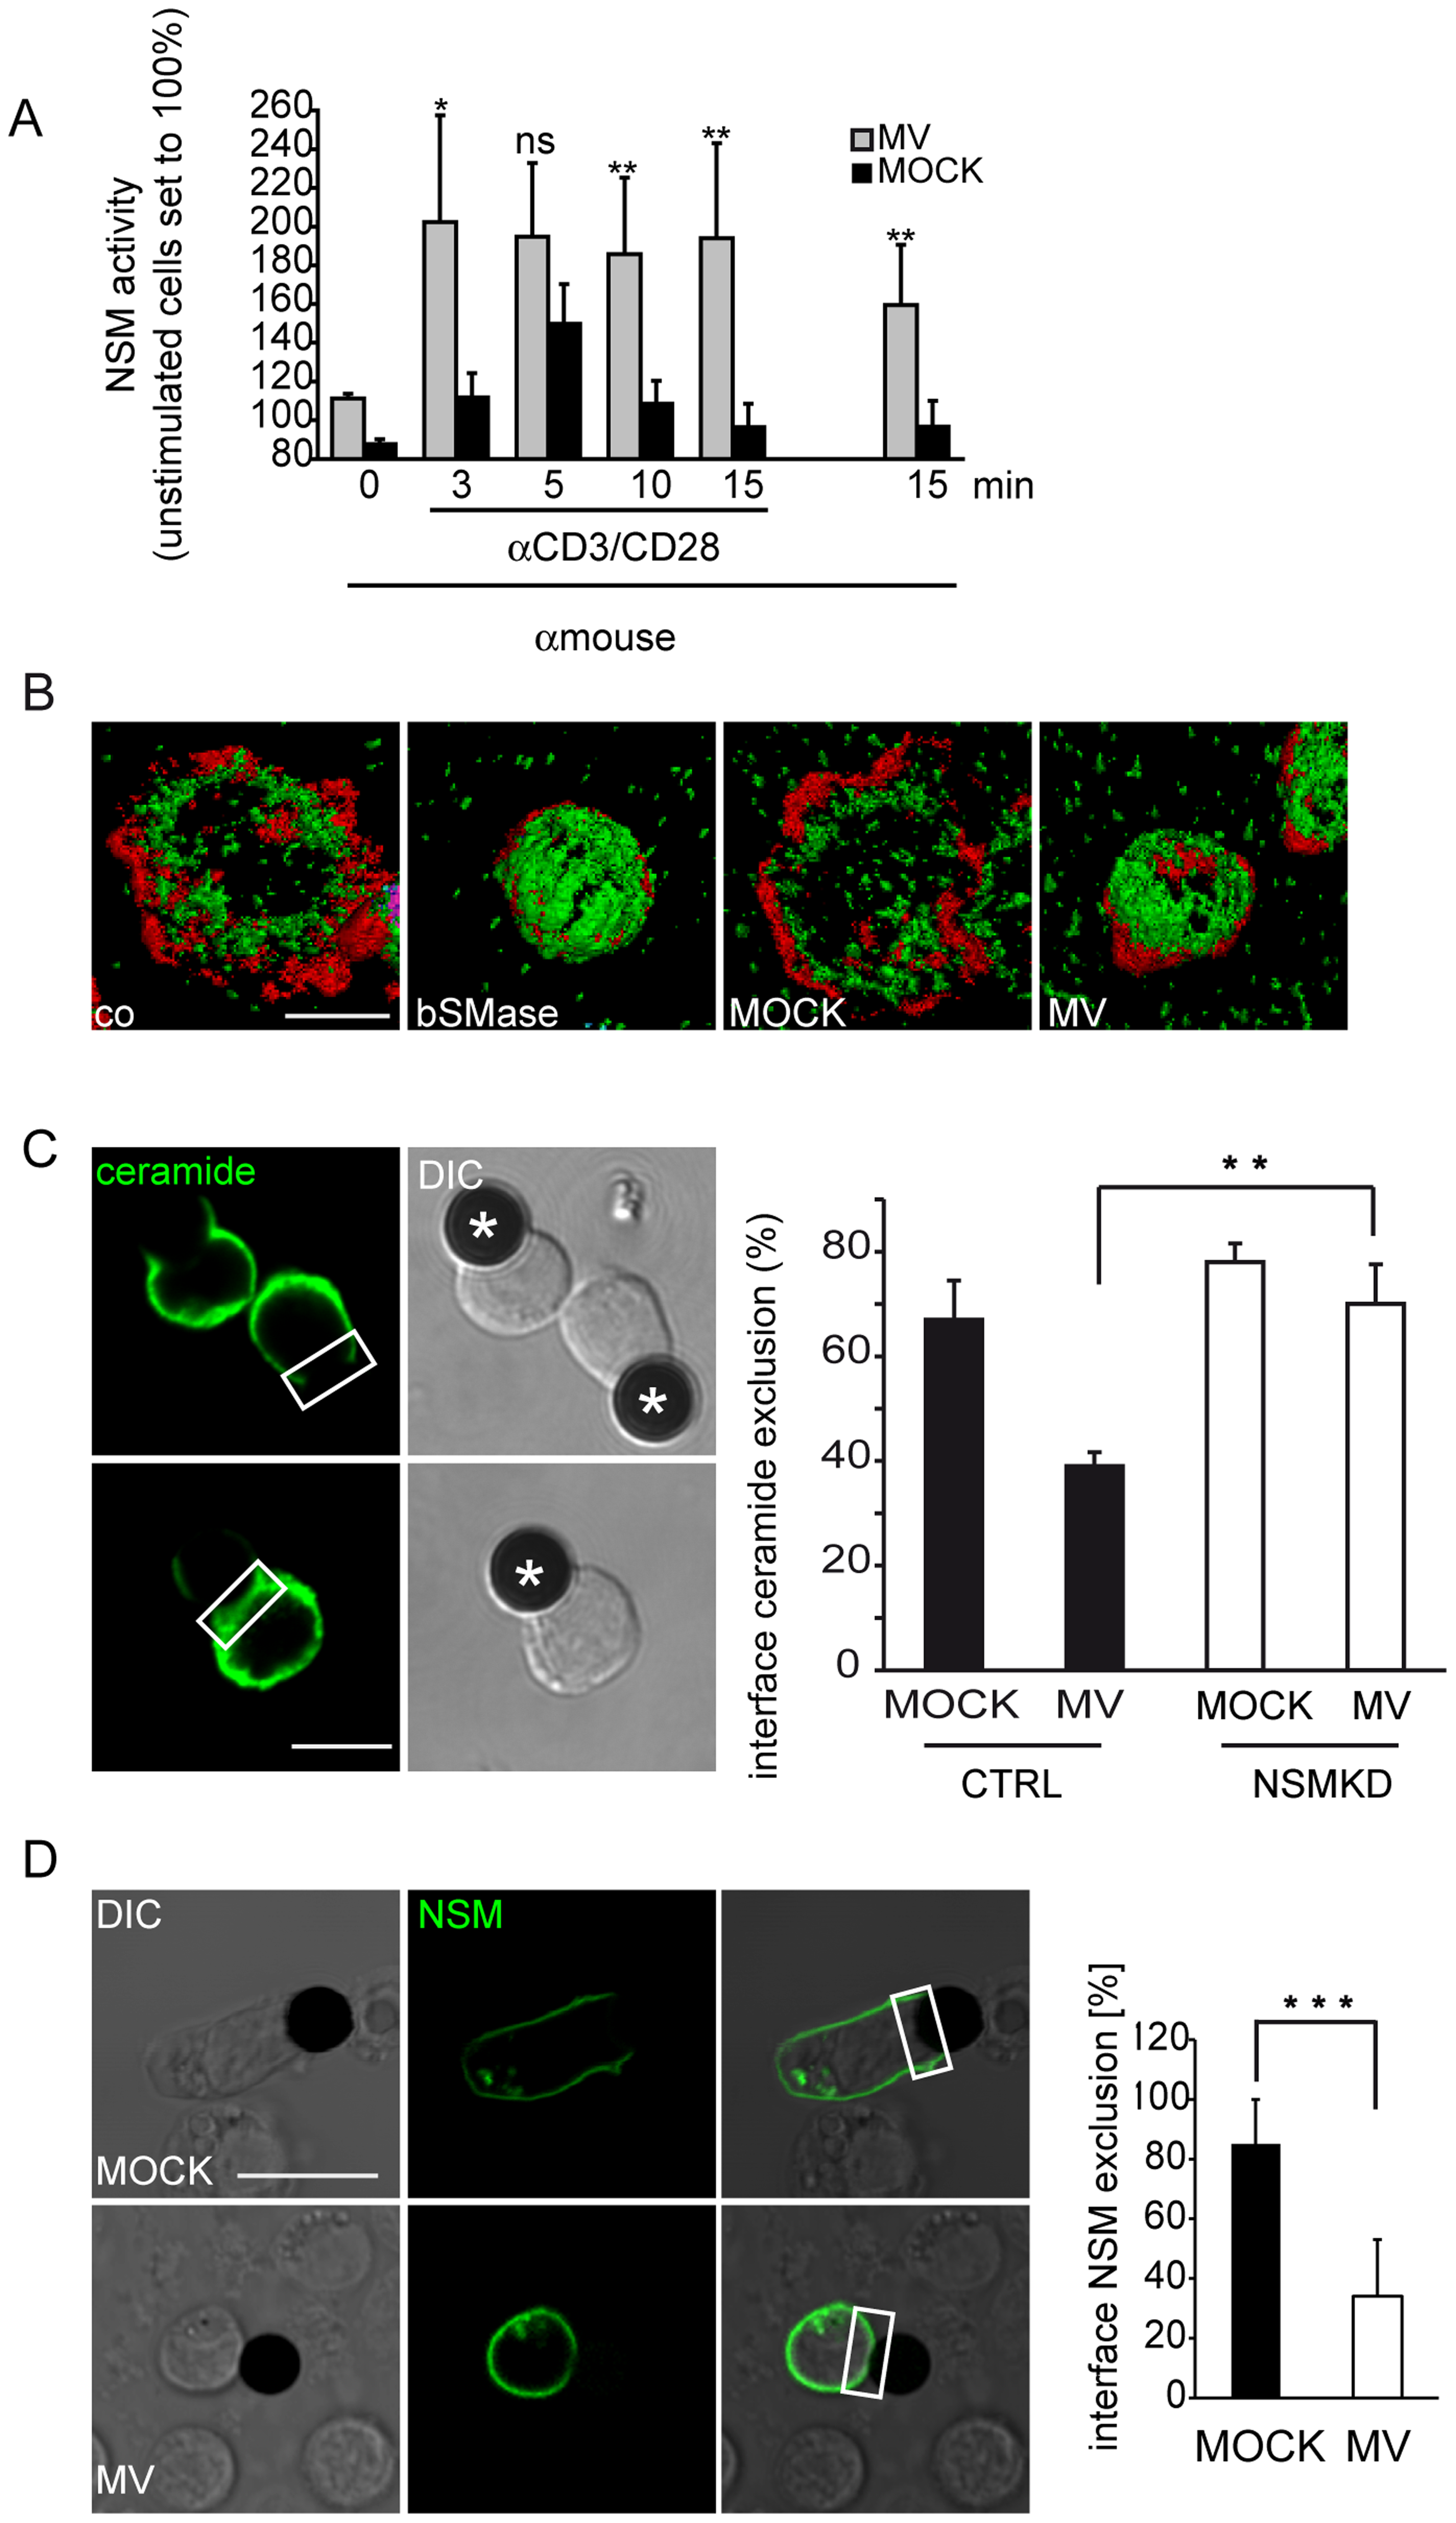 MV causes early superactivation of NSM and ceramide accumulation within stimulatory interfaces.